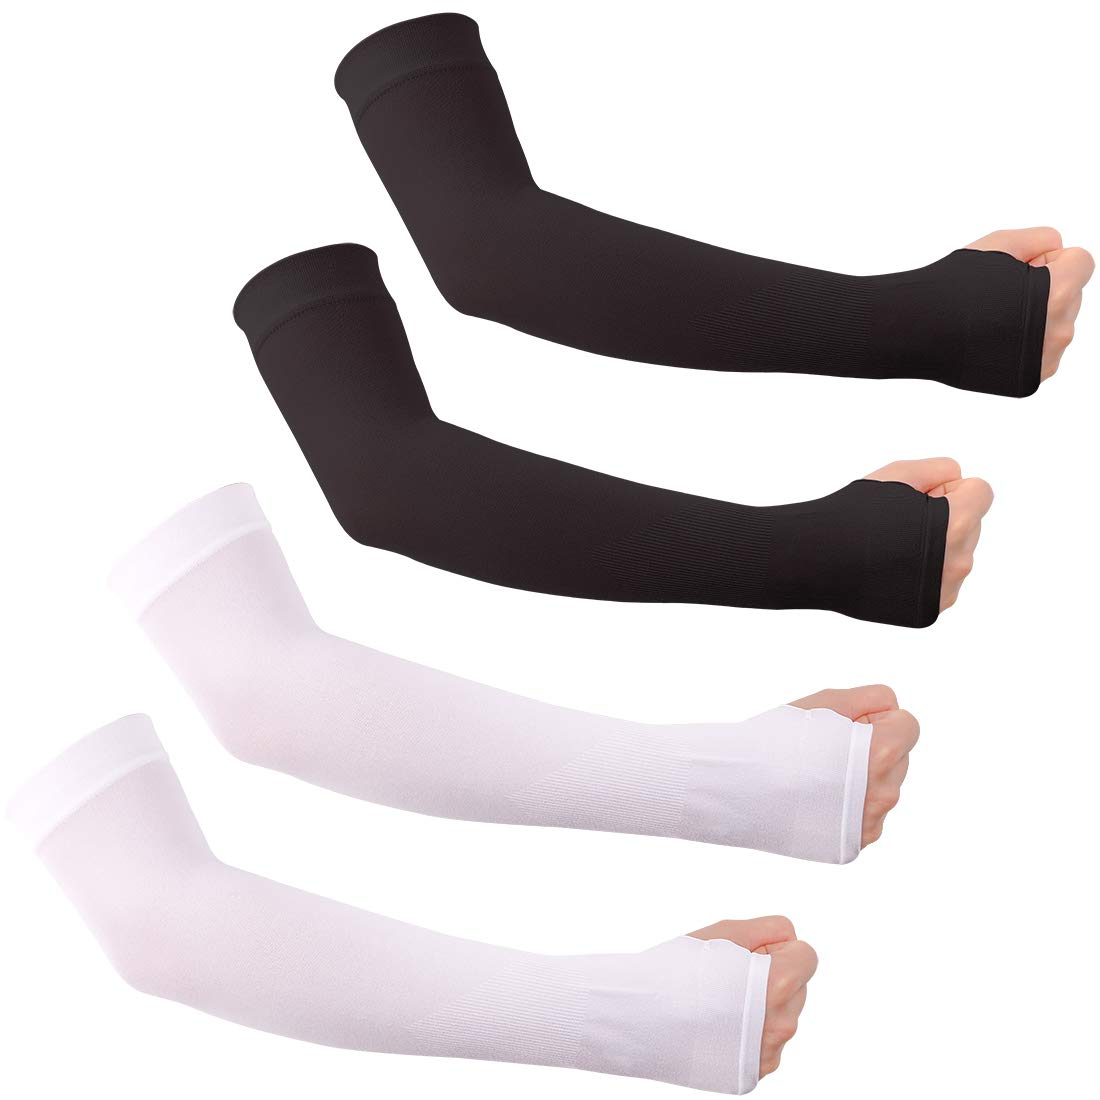 Unisex Arm Sleeves with UV Protection Cooling Long Ice Silk Sleeves for Sports & Outdoors to Cover Arms